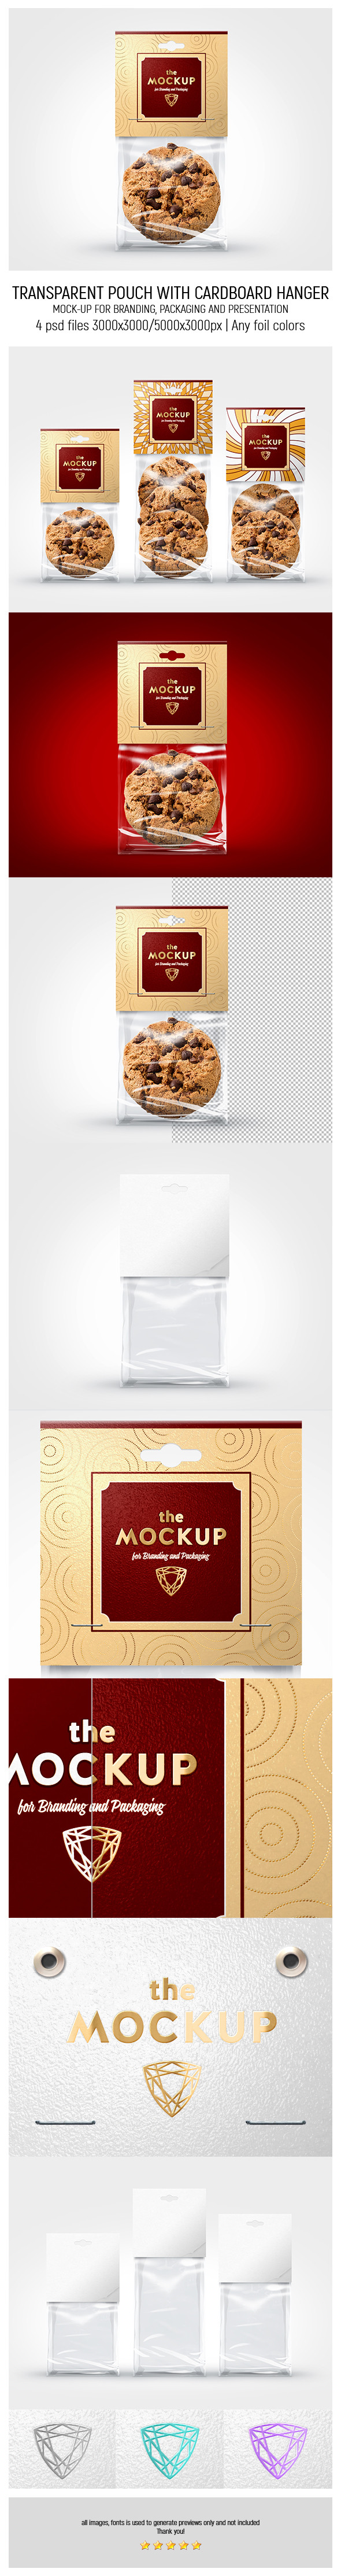 Transparent Pouch With Cardboard Hanger MockUp